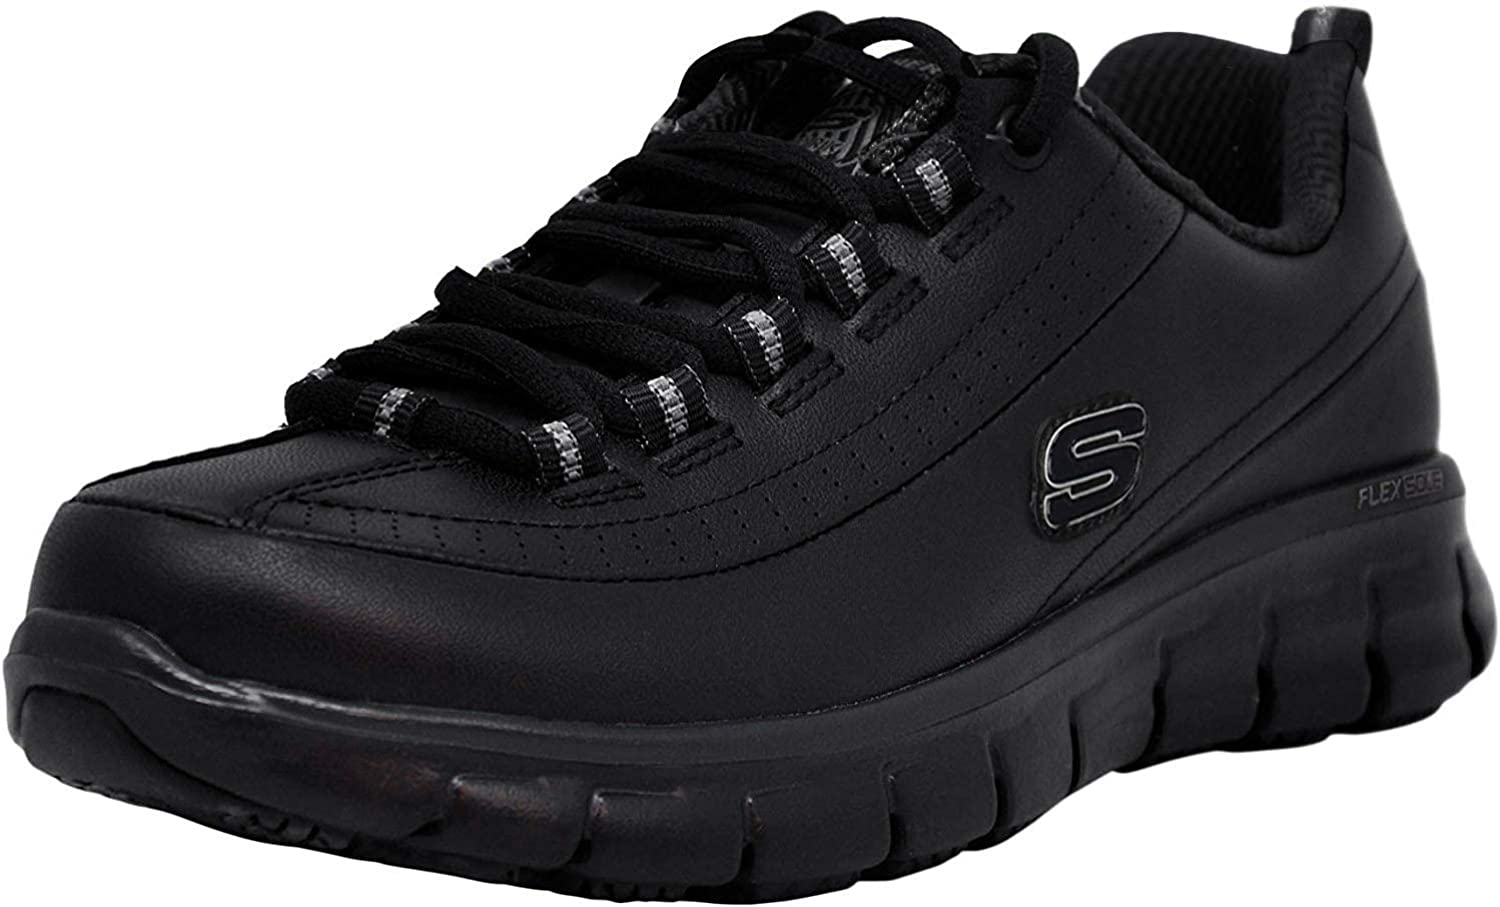 Skechers Sure Track Trickel Shoes